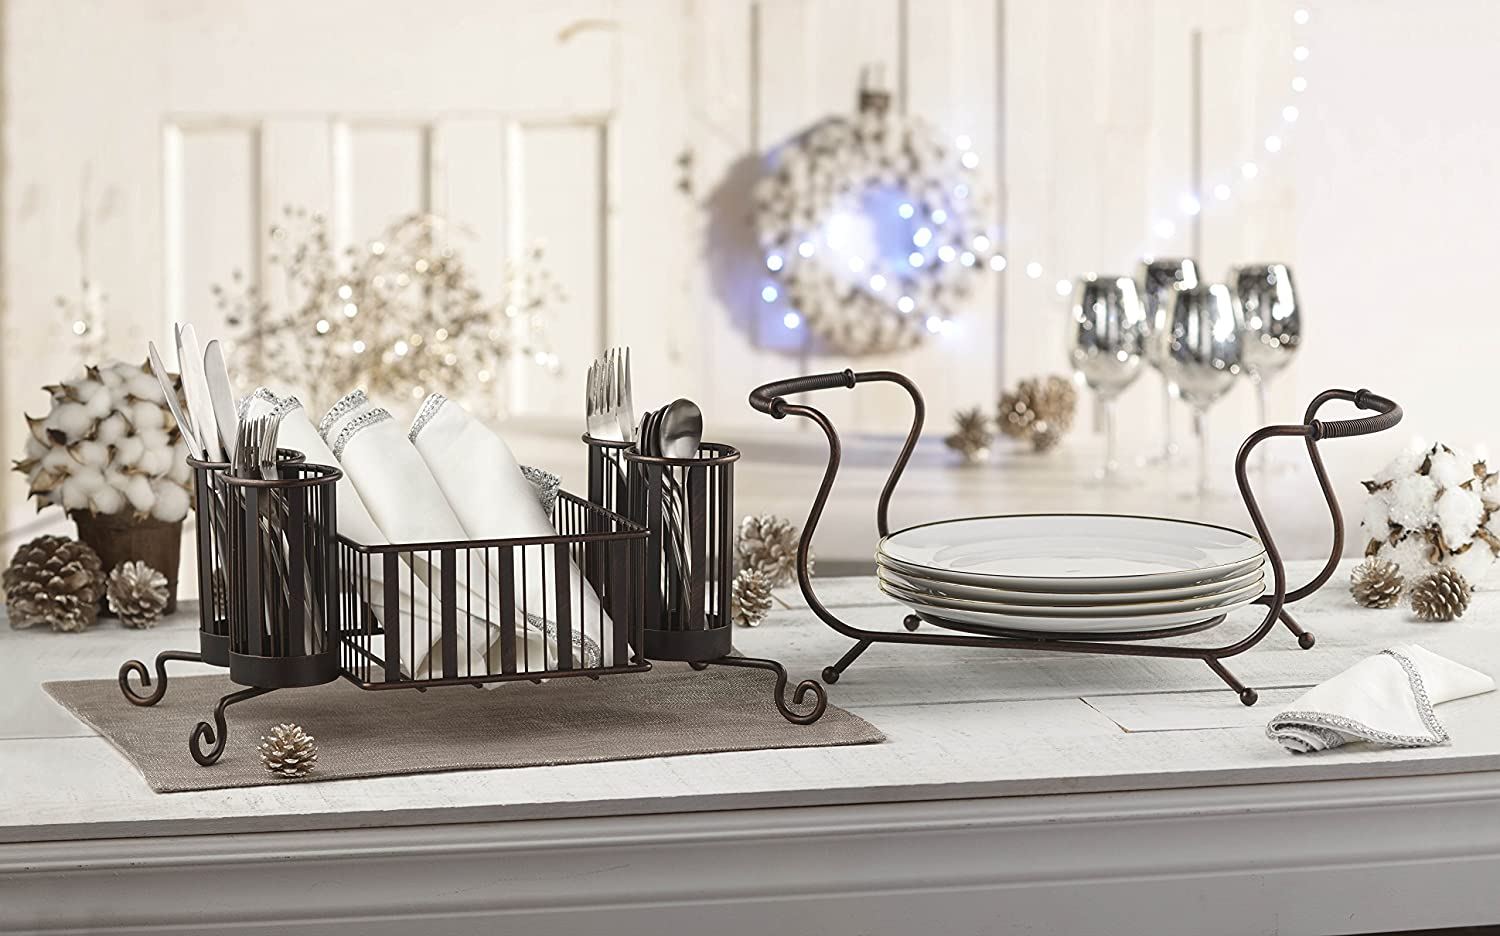 Amazon.com - MESA Delaware Buffet Silverware Caddy Dinner Plate Holder (Antiqued Black Finish) - Kitchen Storage And Organization Product Accessories & Amazon.com - MESA Delaware Buffet Silverware Caddy Dinner Plate ...